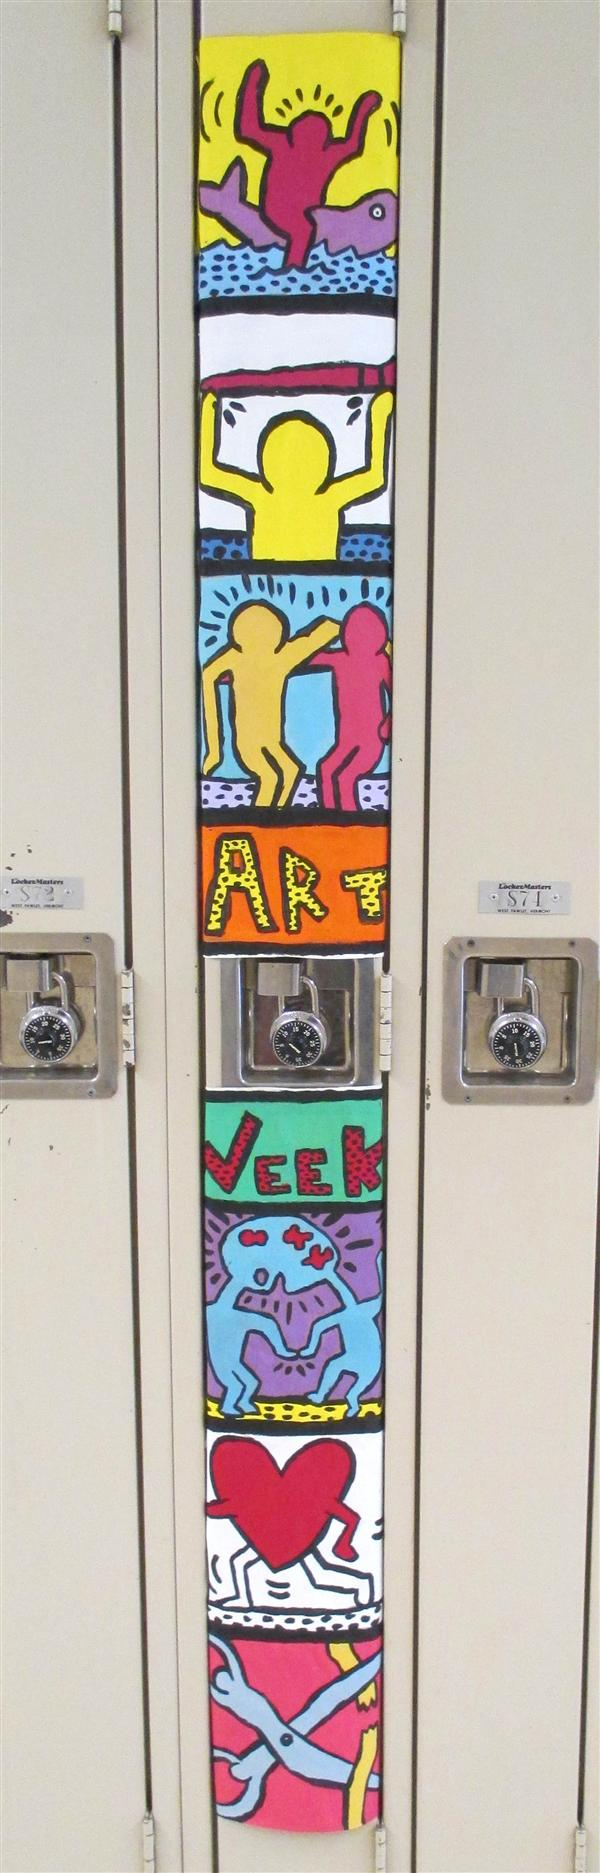 Locker art